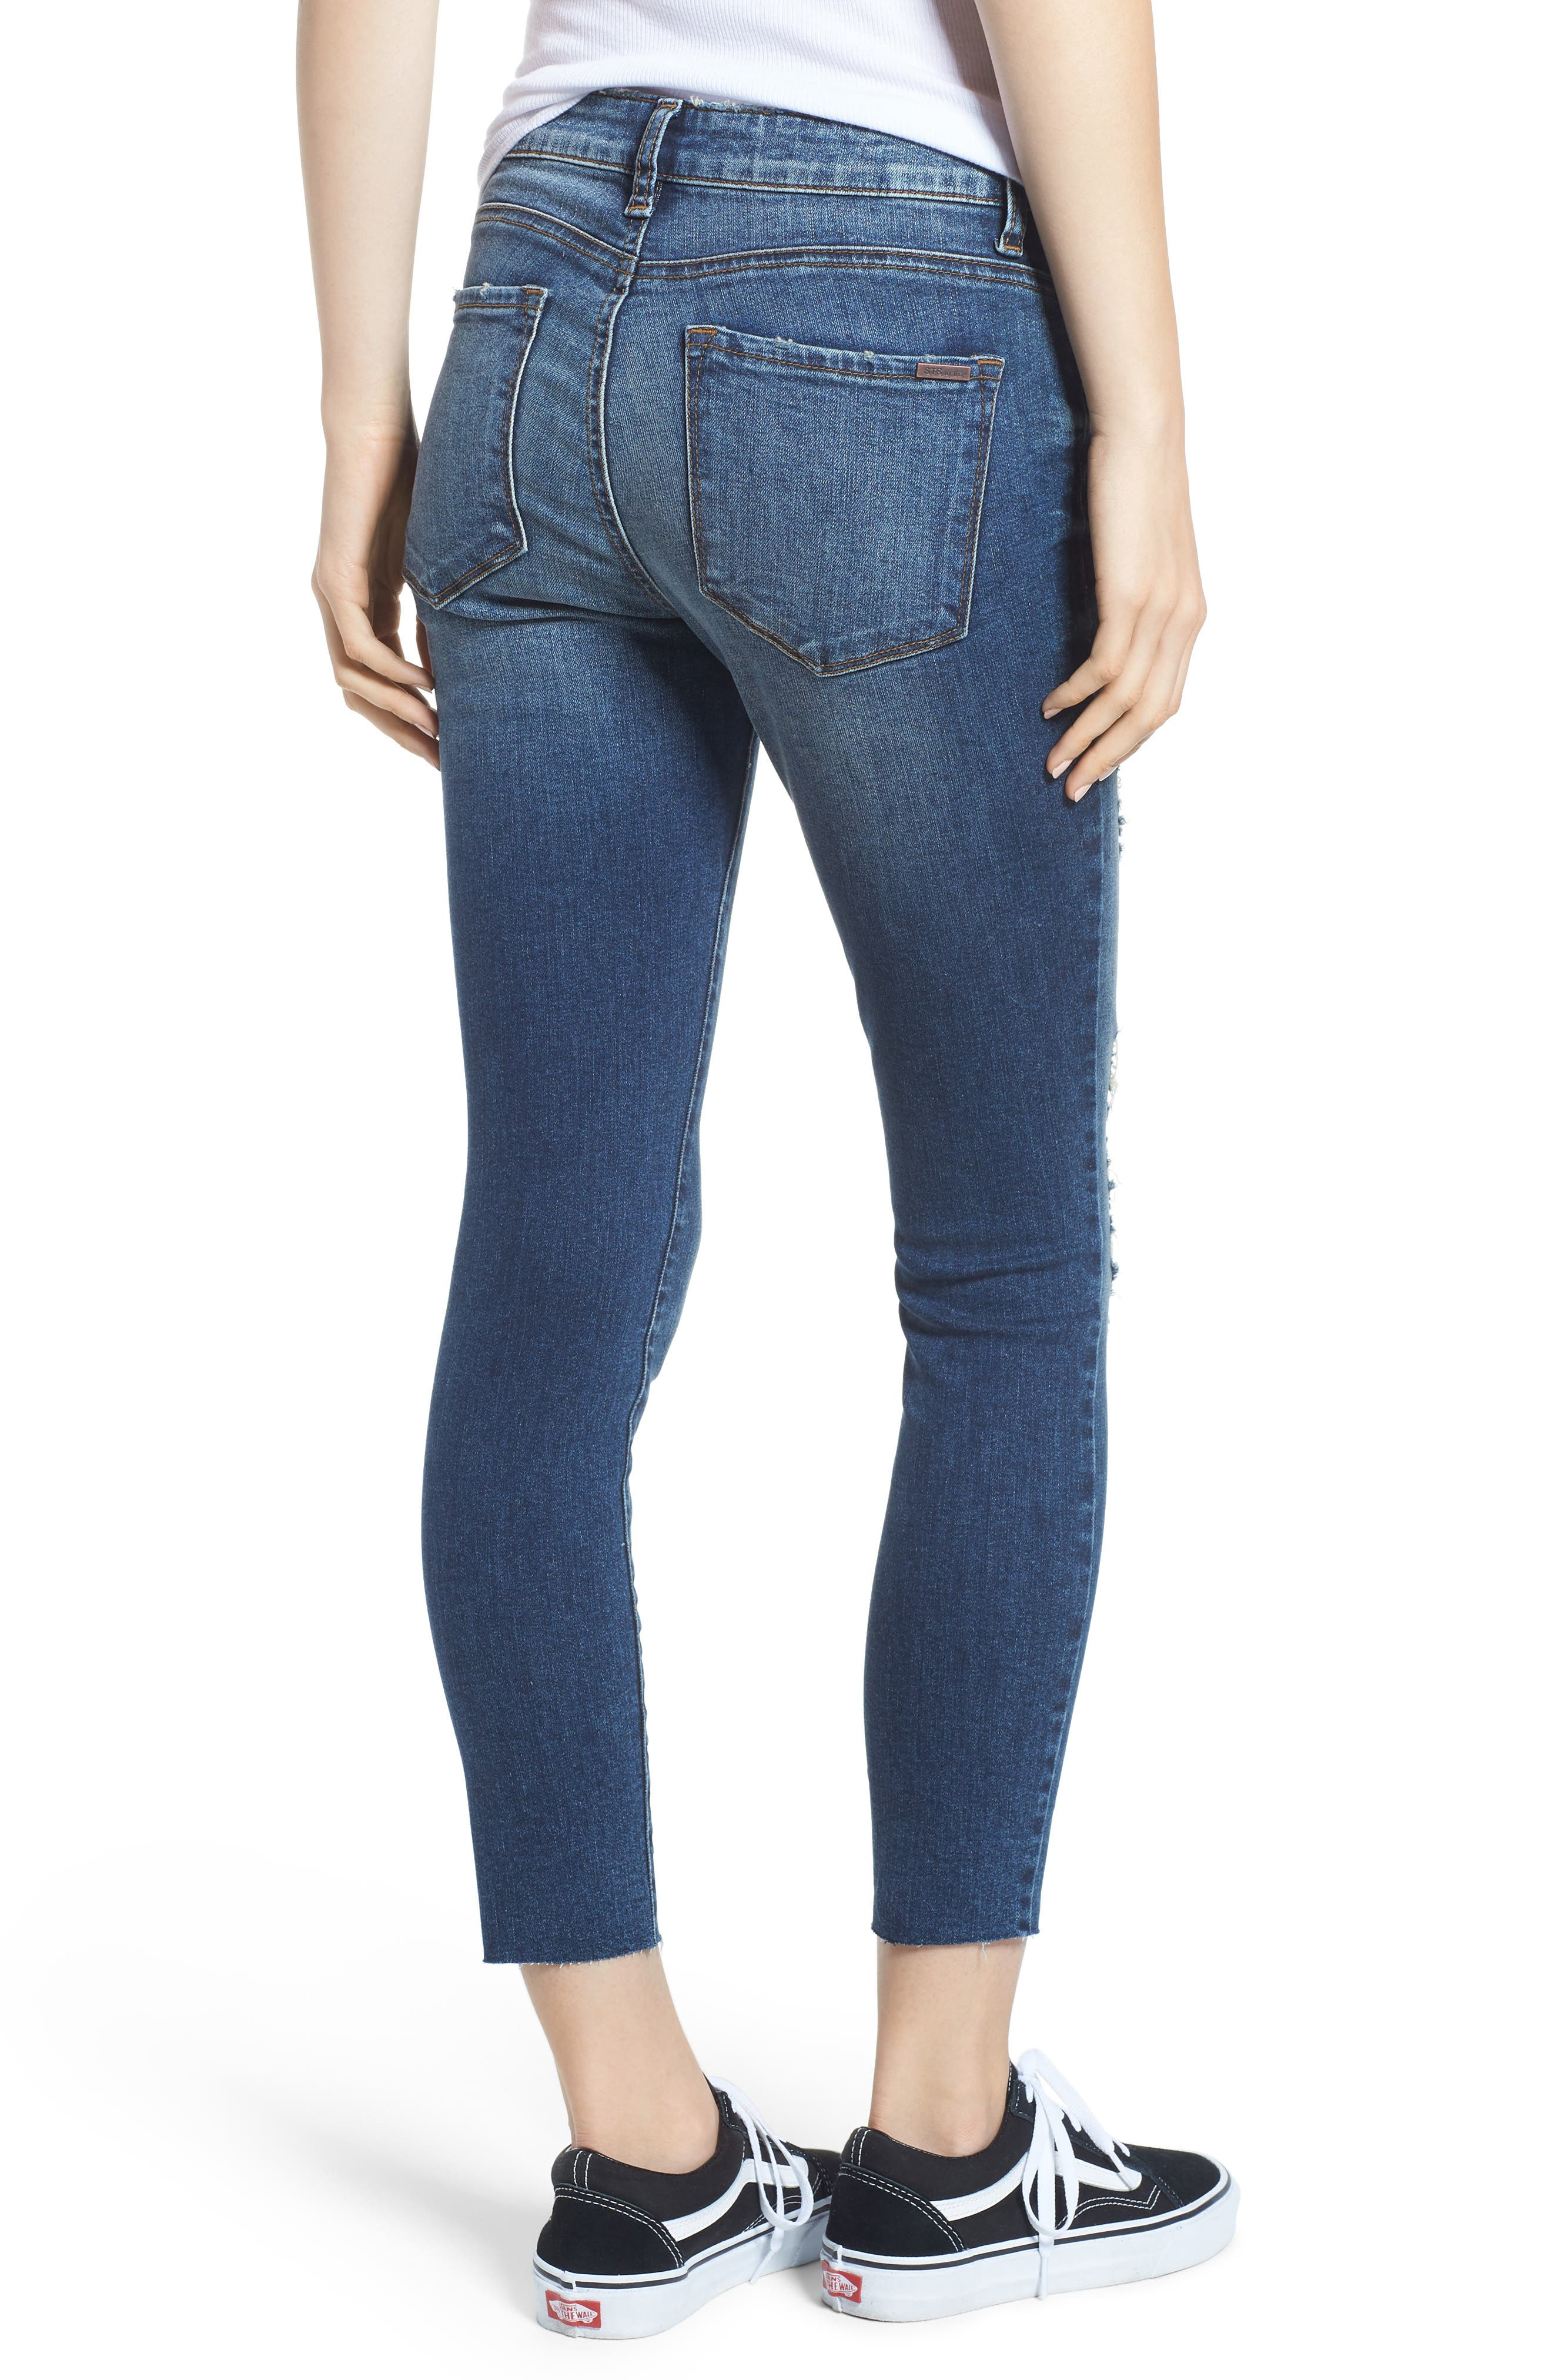 STS Blue Ripped Cutoff Crop Skinny Jeans,                             Alternate thumbnail 2, color,                             FLORA W/ DK BASE